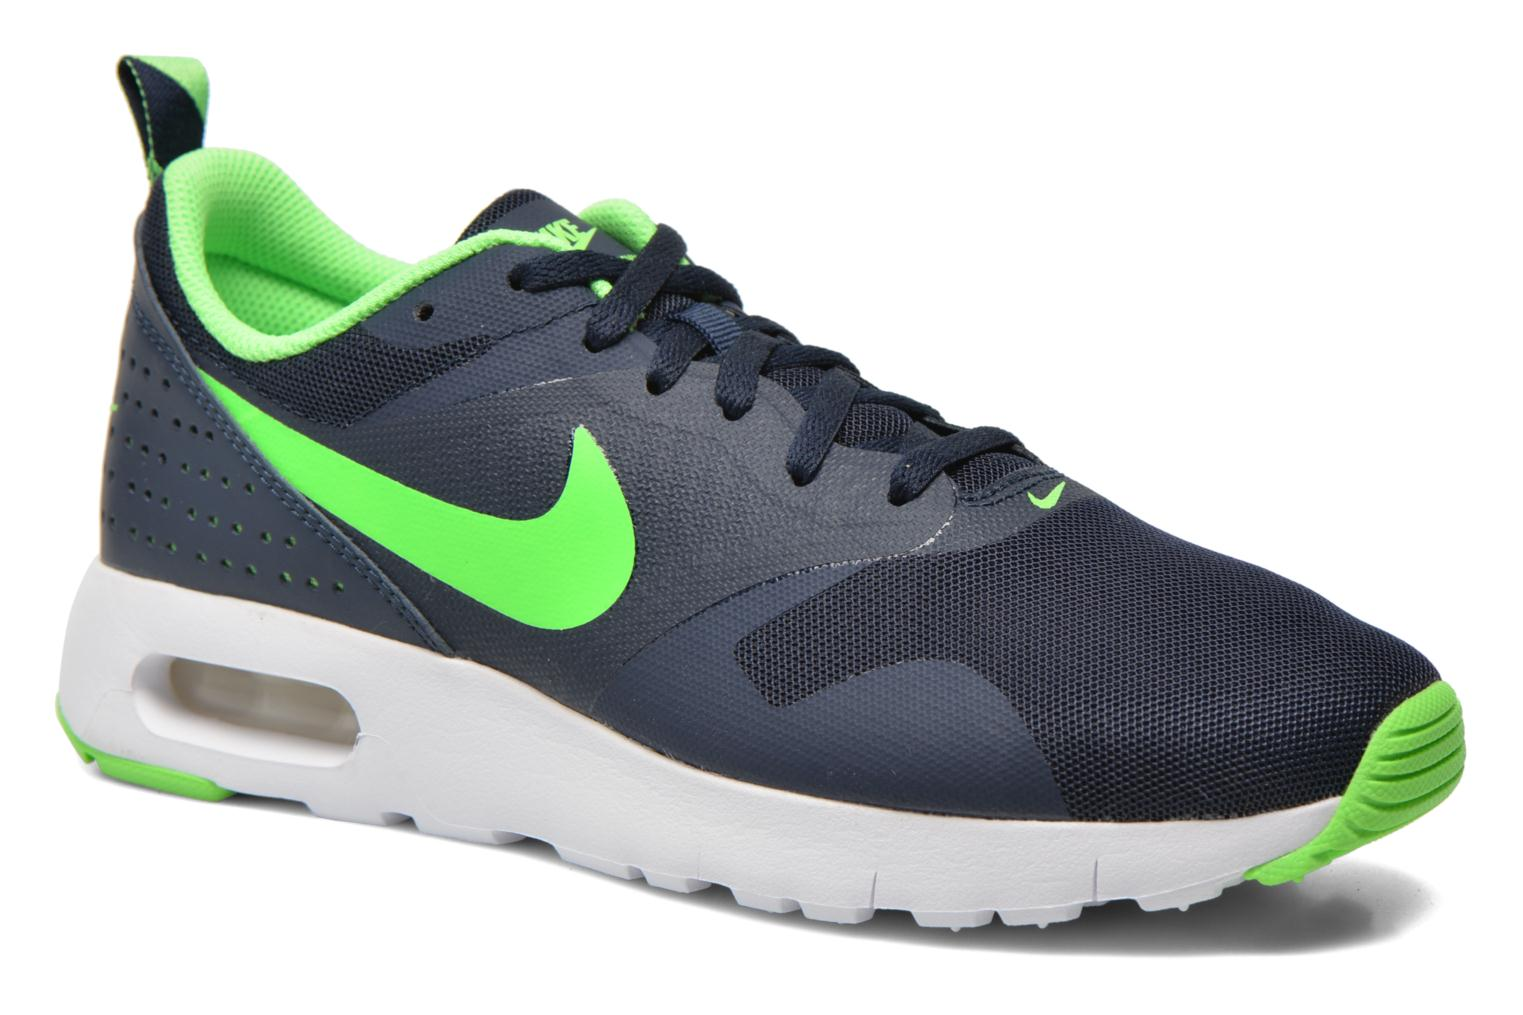 Obsidian/Voltage Green-White Nike Air Max Tavas (Gs) (Bleu)